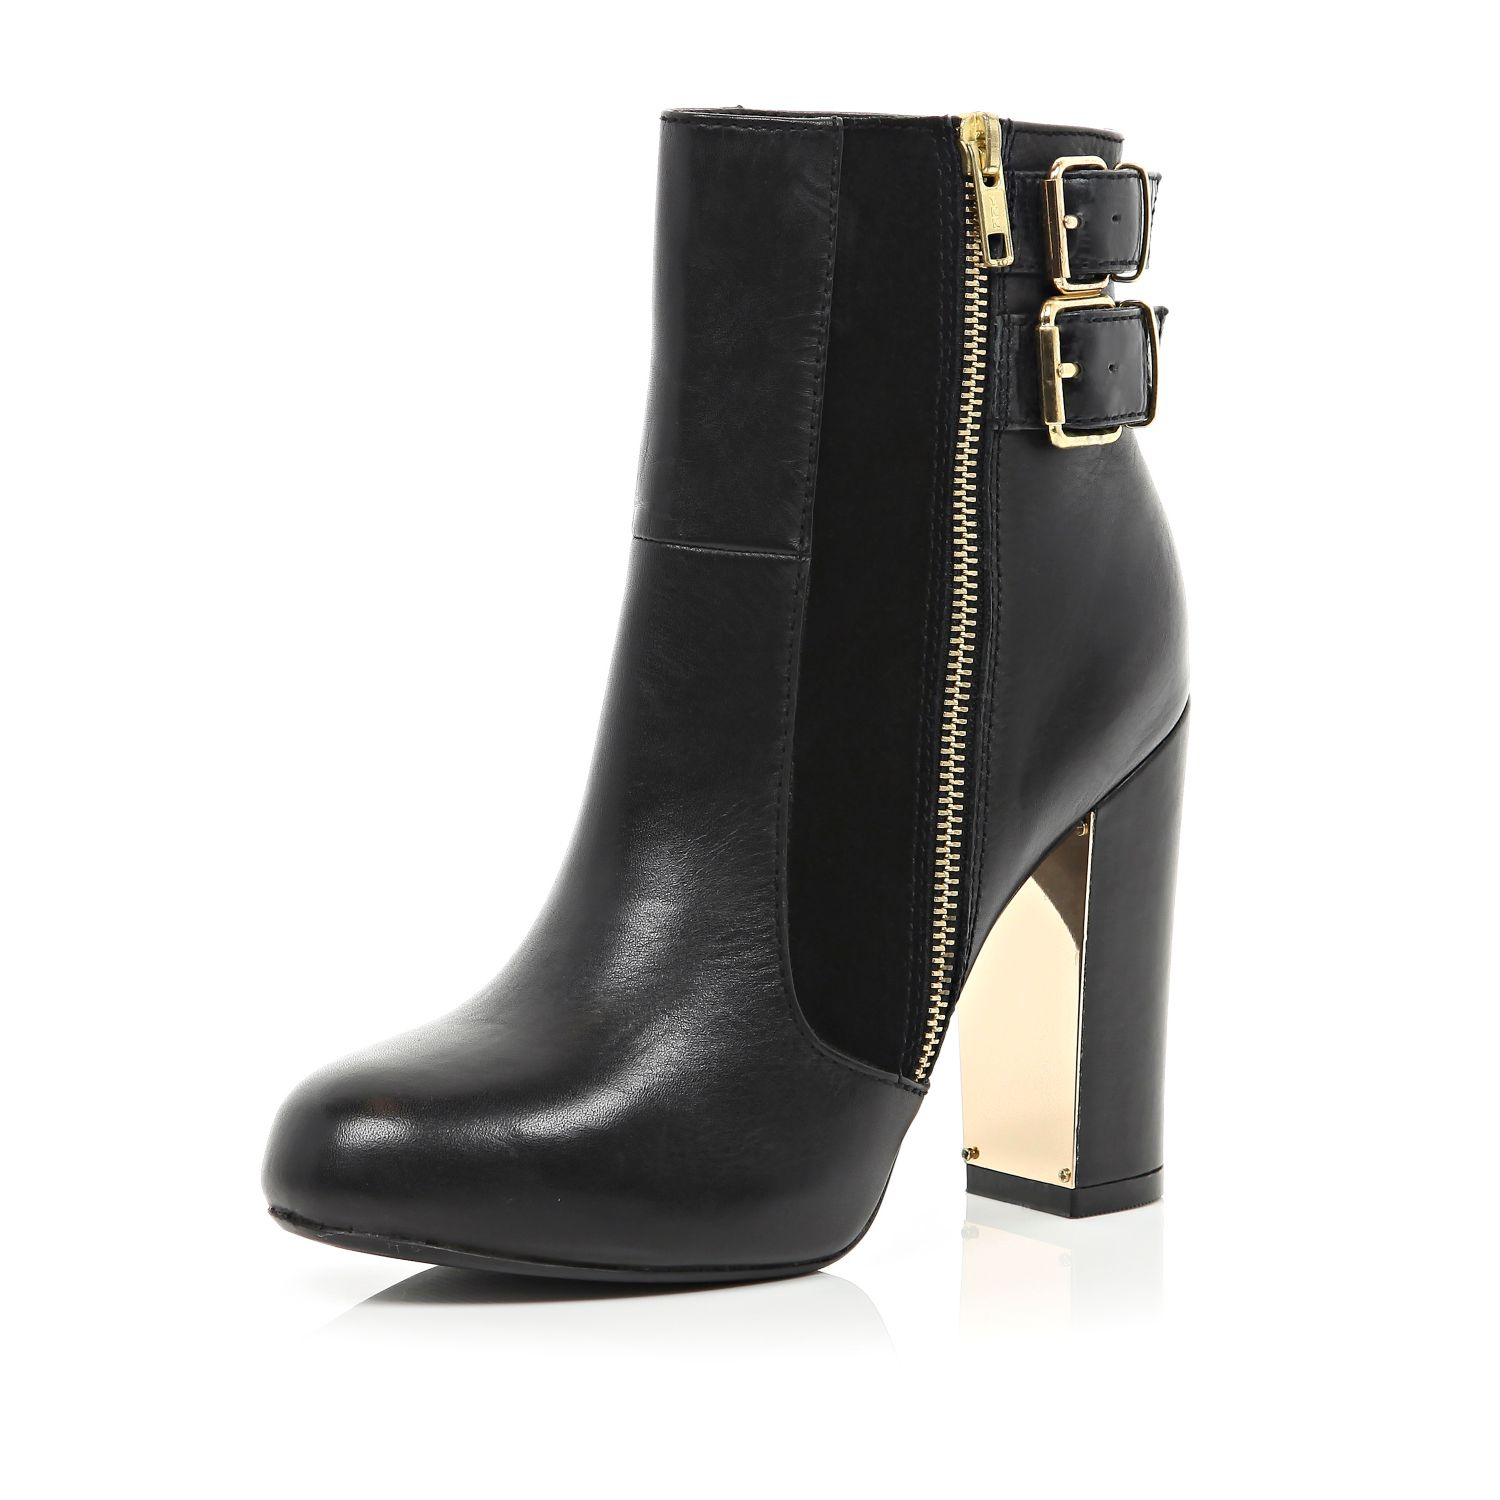 0170449e0d4d River Island Black Metal Trim Block Heel Ankle Boots in Black - Lyst